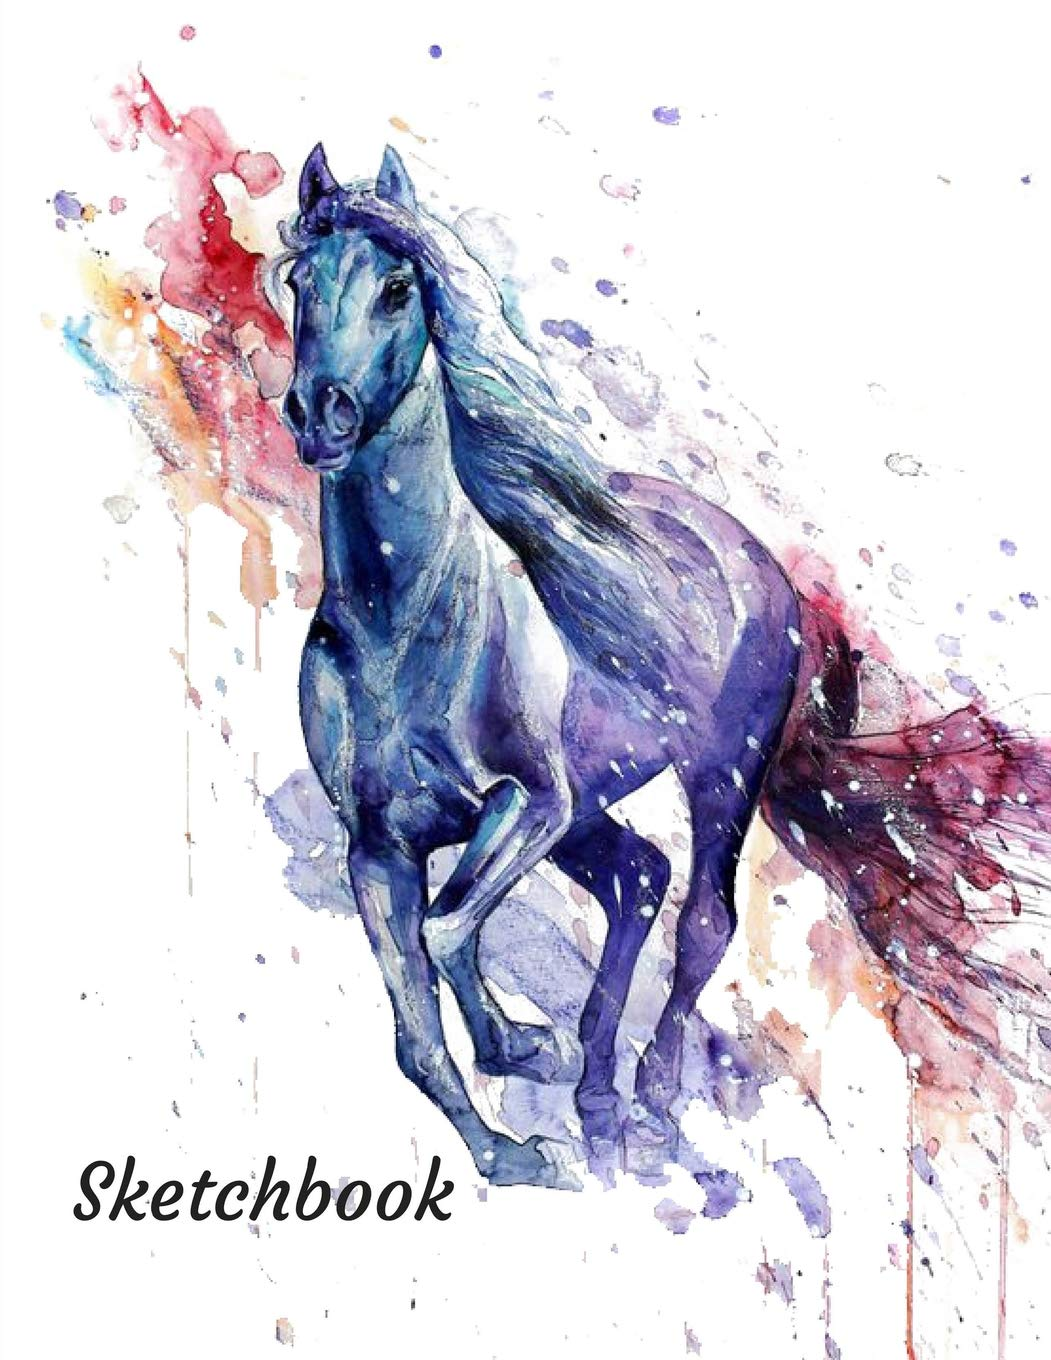 Sketchbook Painting Creative Doodling Or Sketching. A Blue Watercolor Horse Themed Personalized Artist Sketch Book Notebook and Blank Paper for Drawing